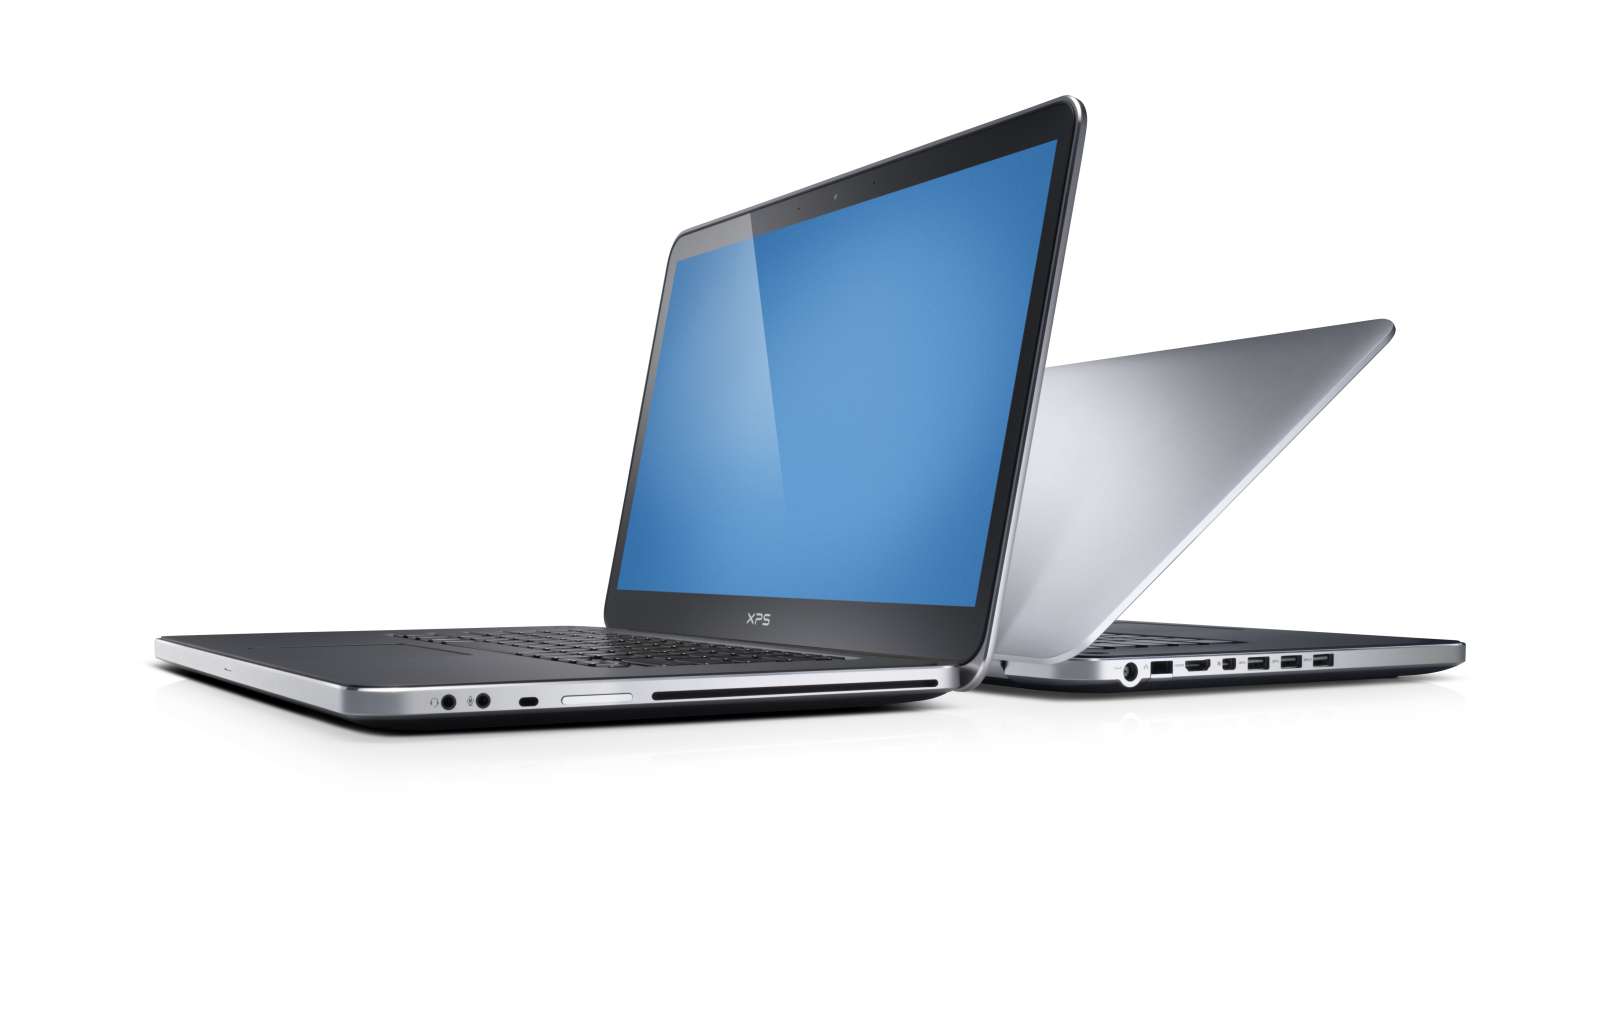 Sửa laptop Dell Announces Huge 2015 Lineup